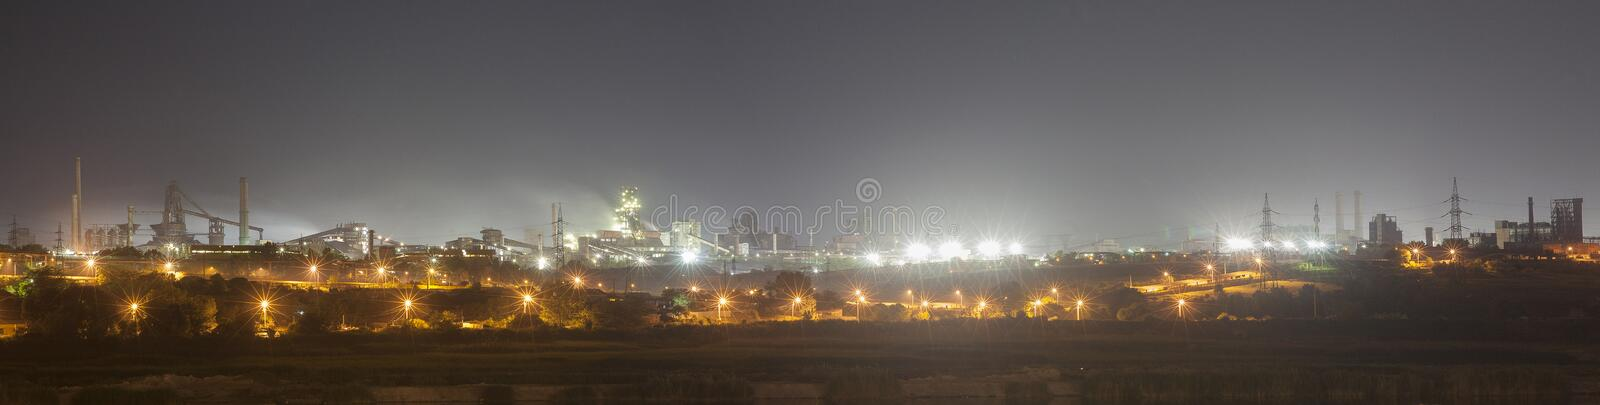 Steel mill factory by night stock photo